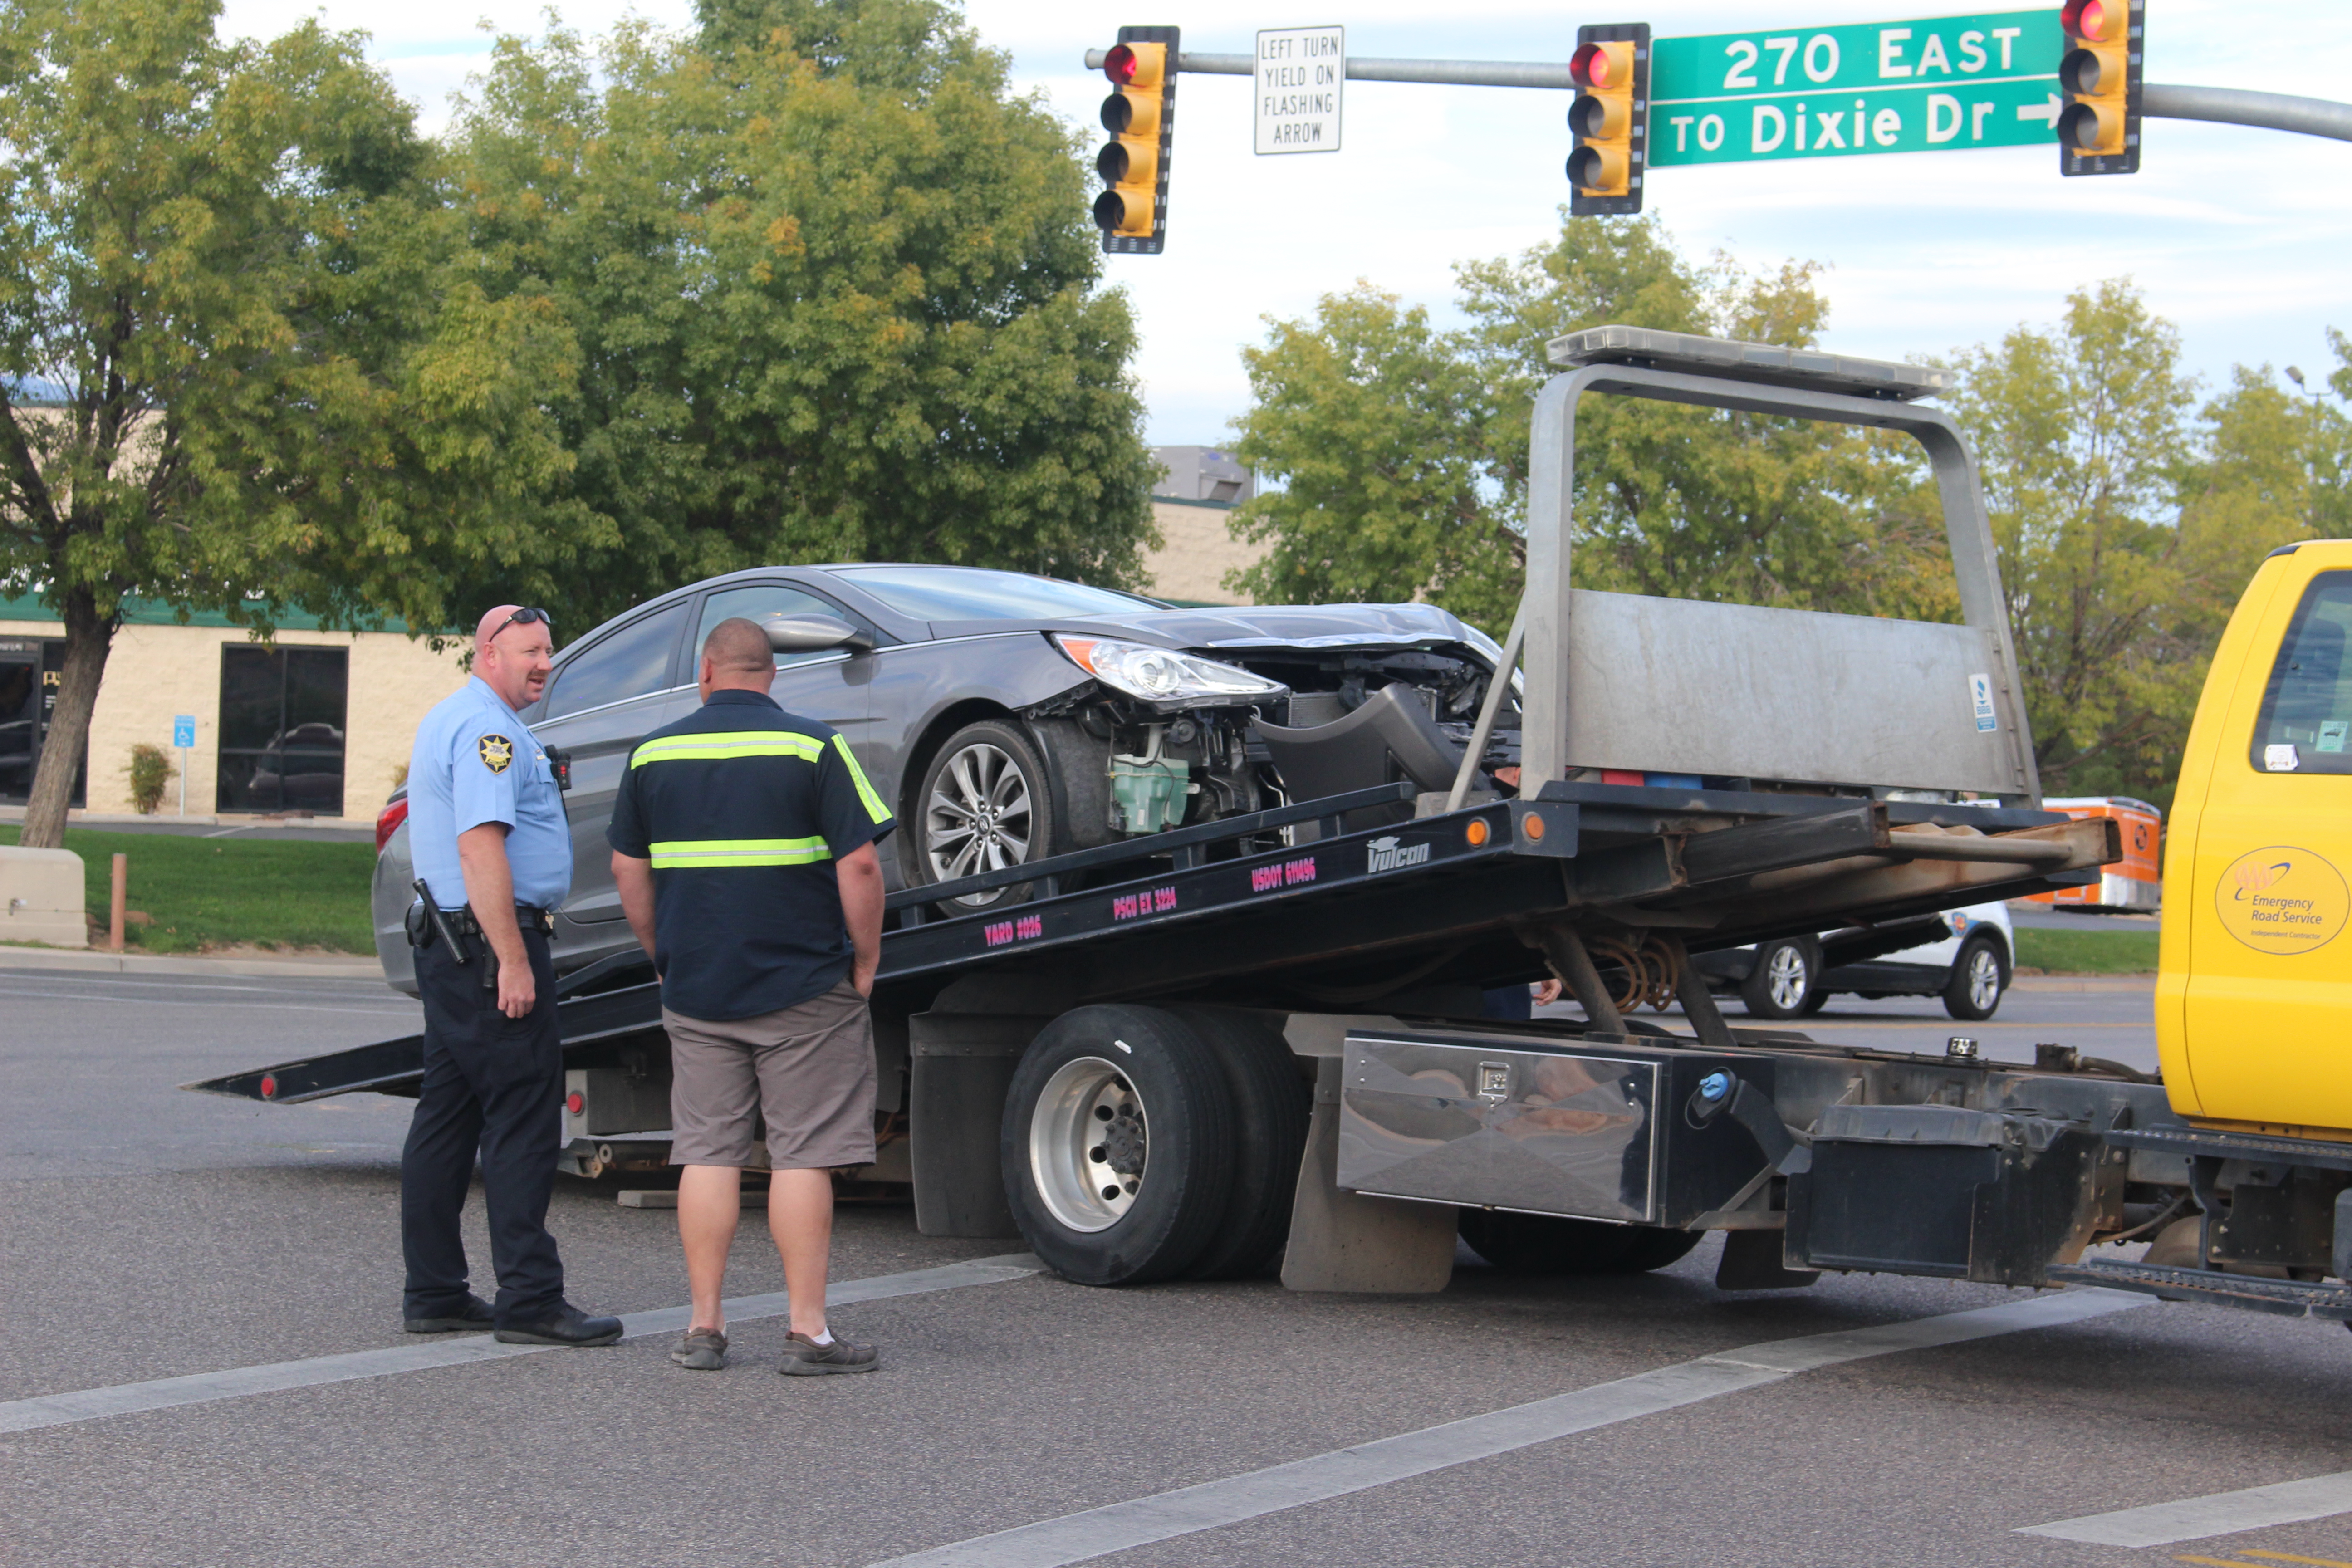 A Hyundai is towed after a 3-car crash on Riverside Drive, St. George, Utah, Nov. 12, 2016 | Photo by Joseph Witham, St. George News